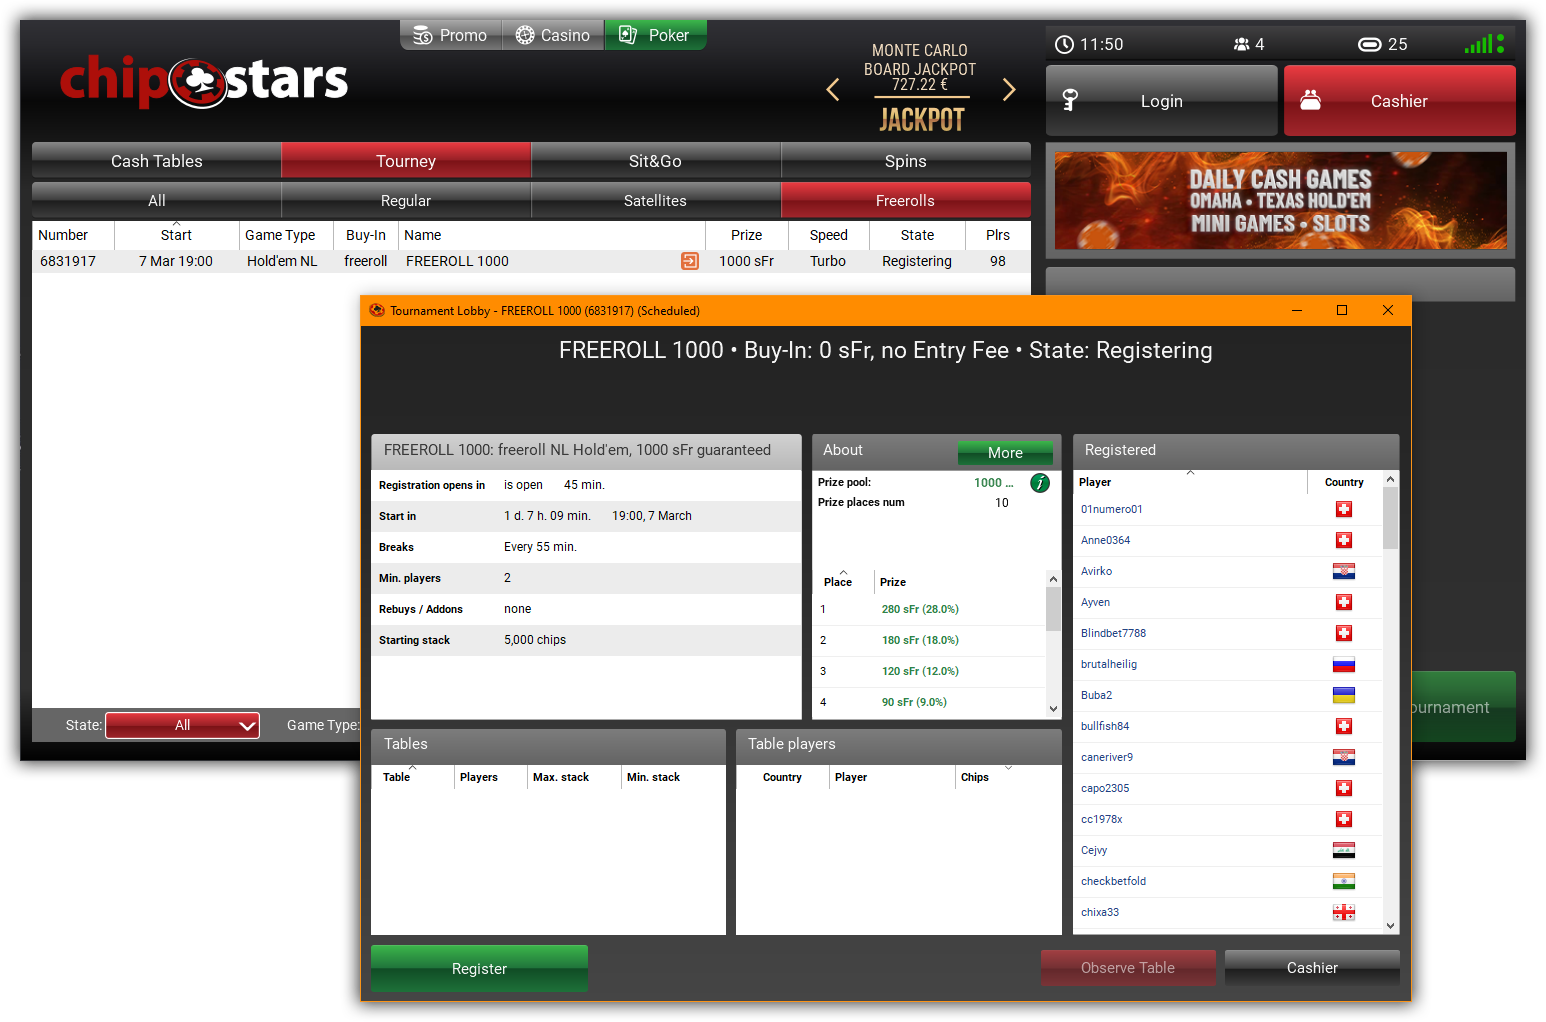 https://i.ibb.co/qx5xQDm/chipstars-2021-03-1000chf-freeroll-lobby.png